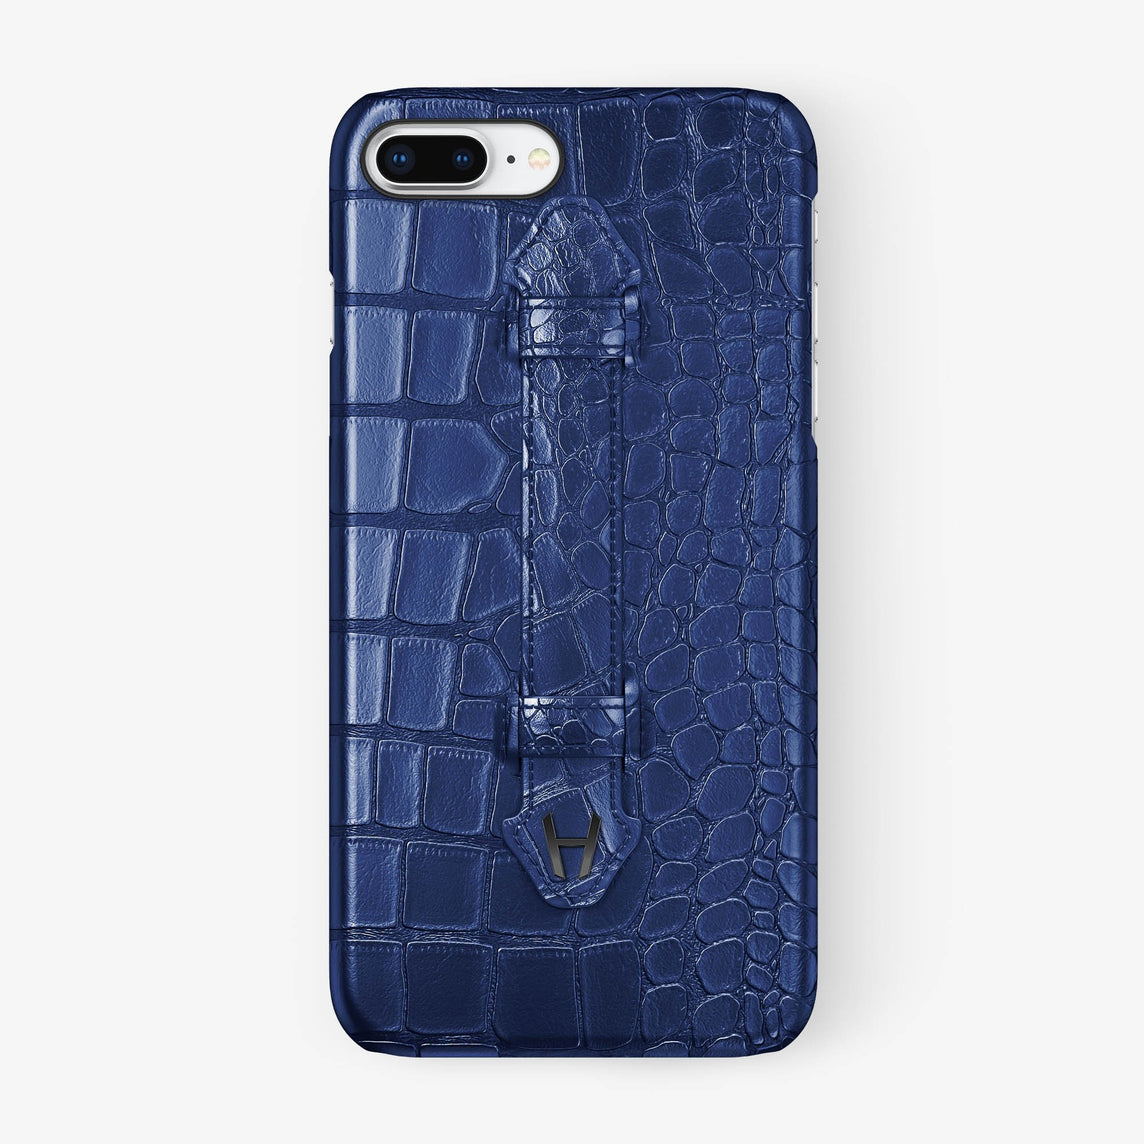 Navy Blue Alligator iPhone Finger Case for iPhone 7/8 Plus finishing black - Hadoro Luxury Cases